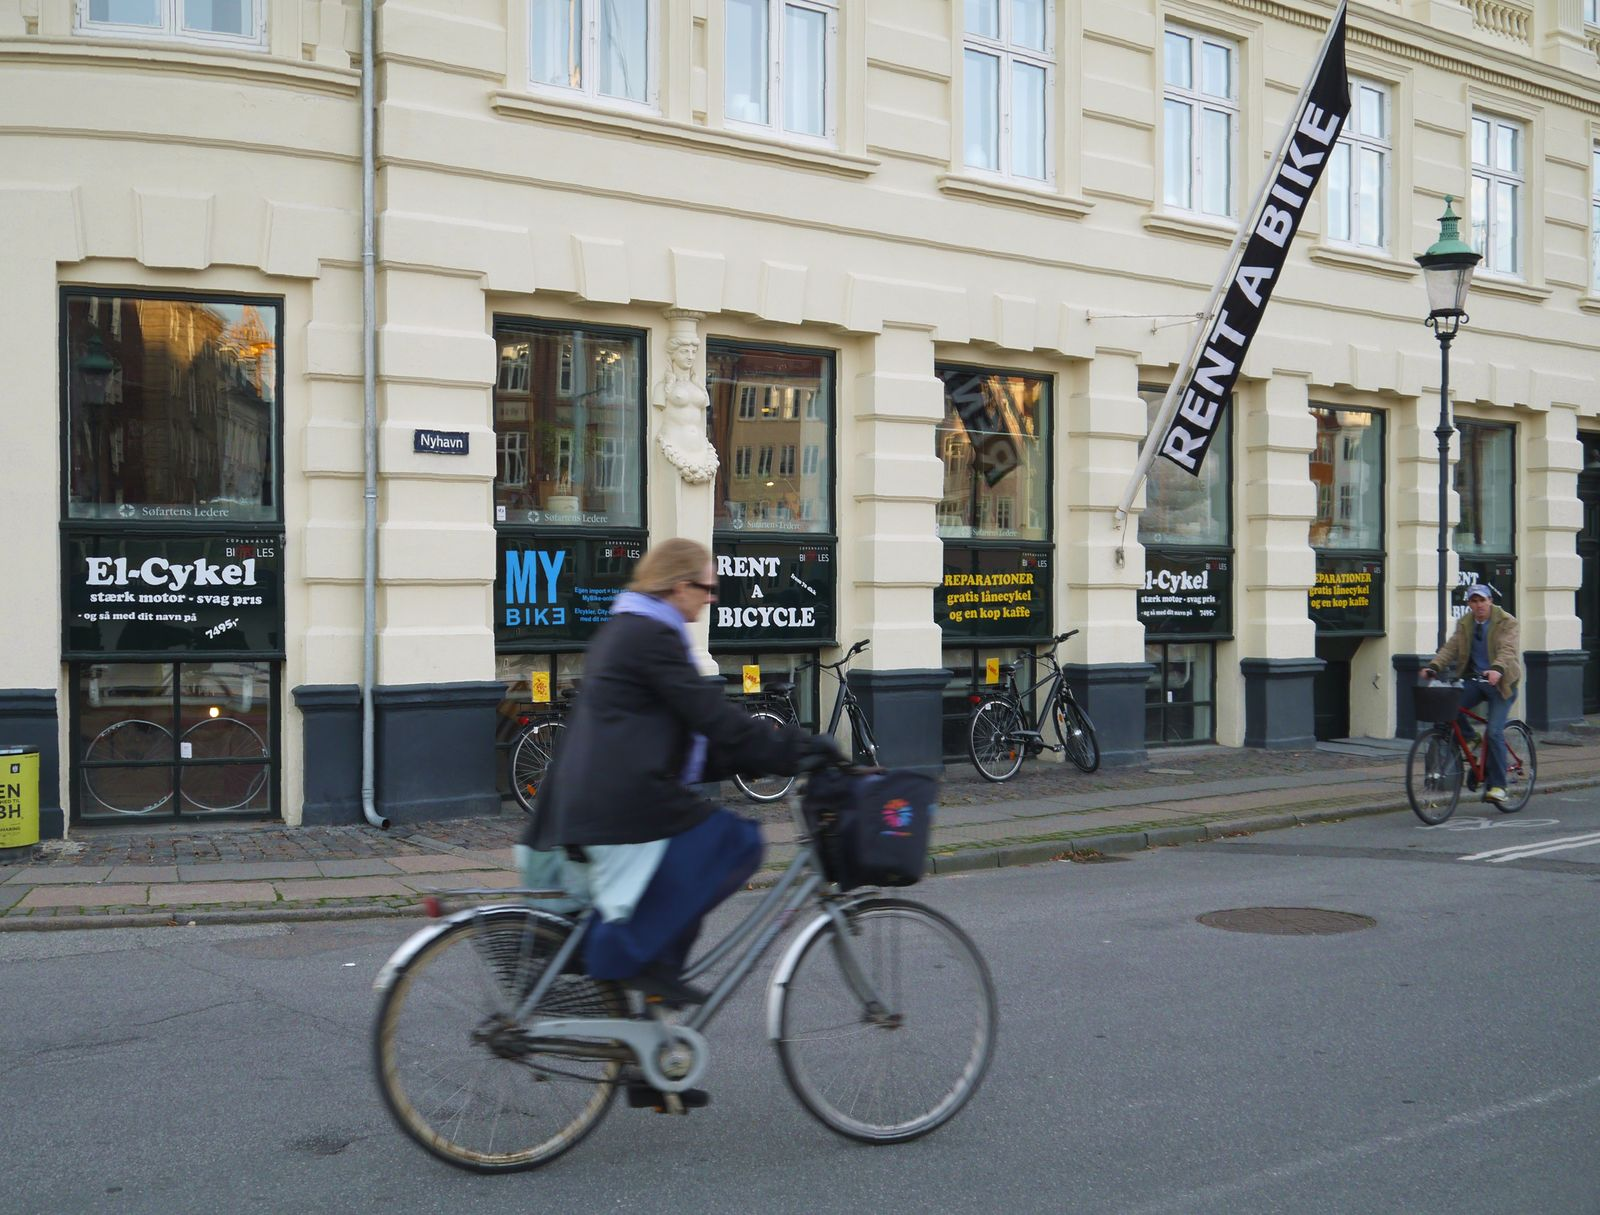 Copenhagen, Denmark: cyclists in front of bicycle rental shop in the city center